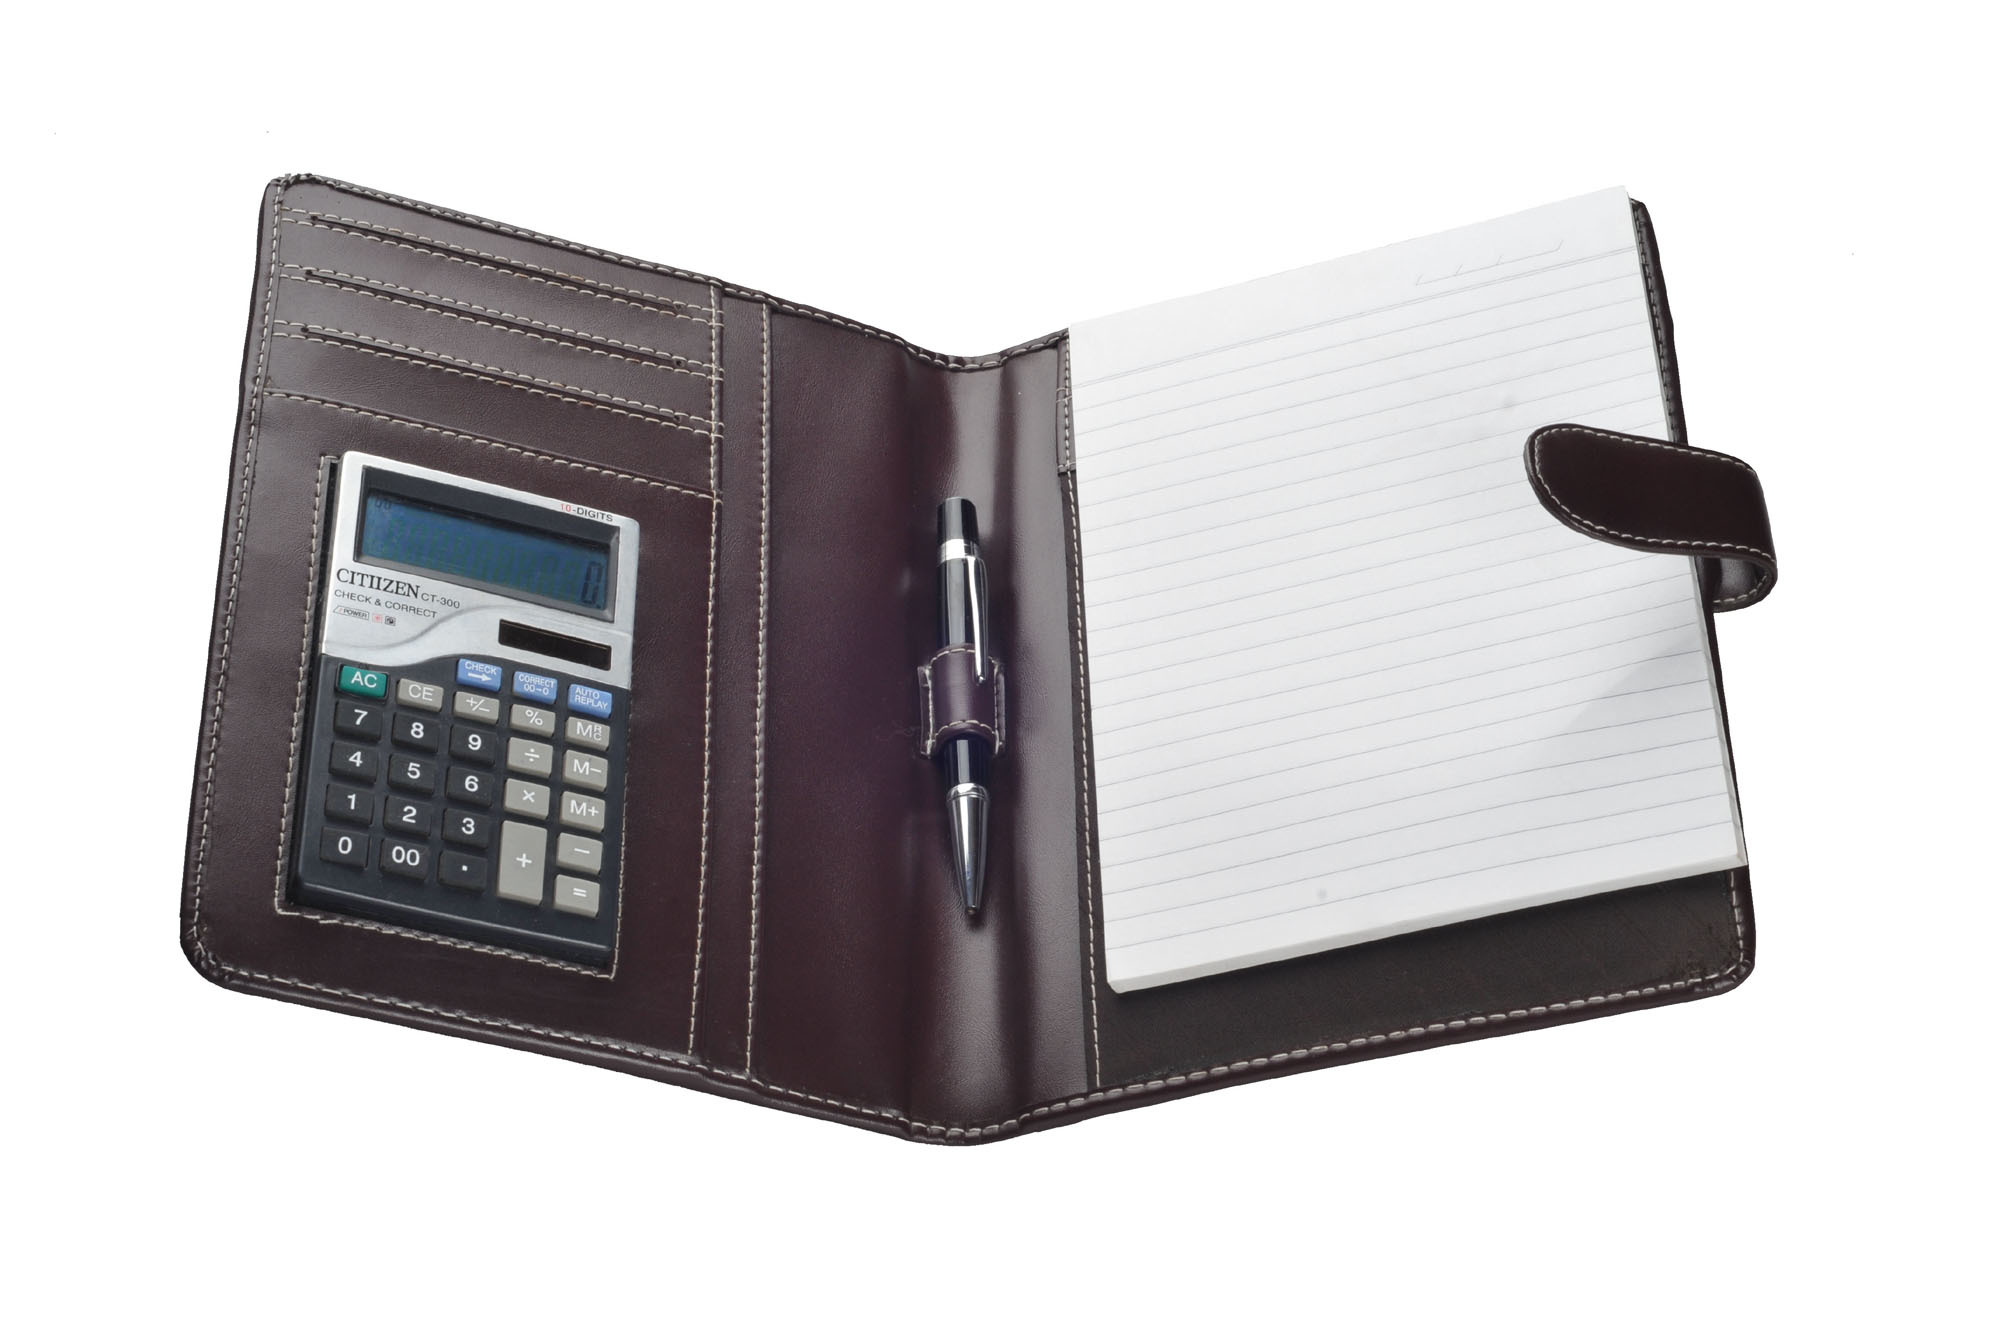 A-5 Folder With Calculator (X546)